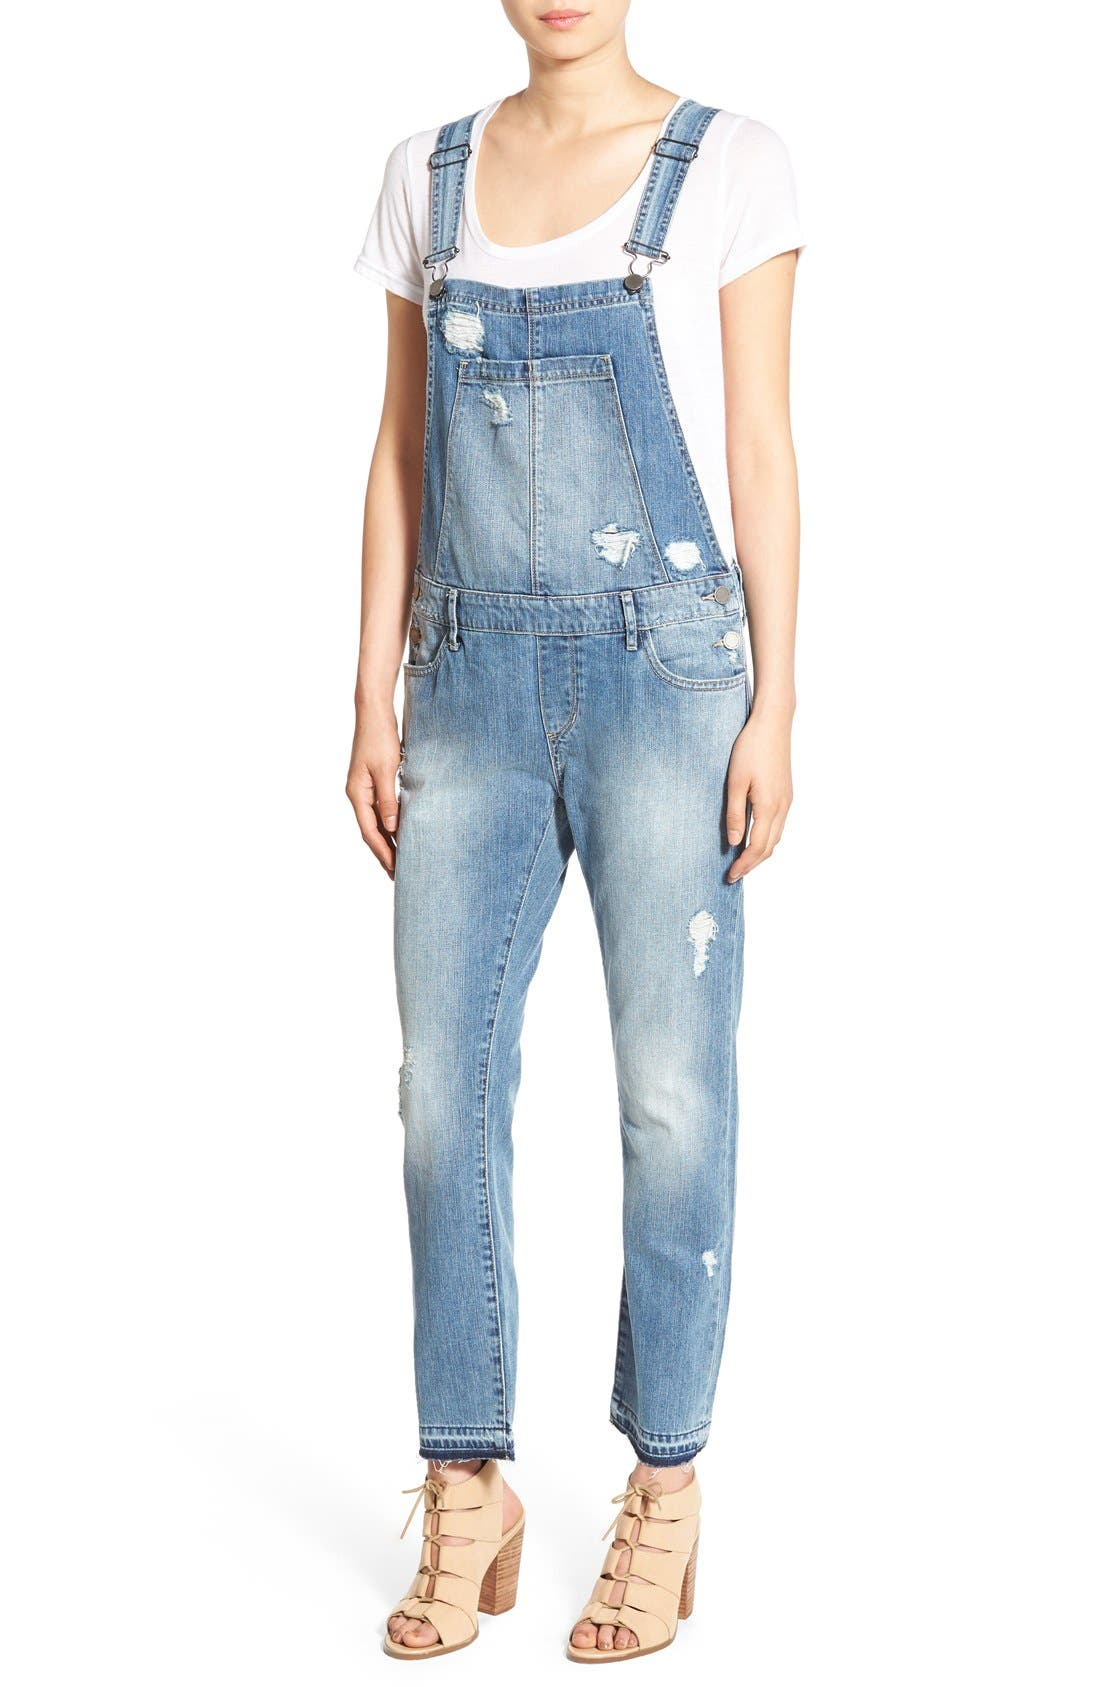 Alternate Image 1 Selected - Articles of Society Distressed Denim Overalls